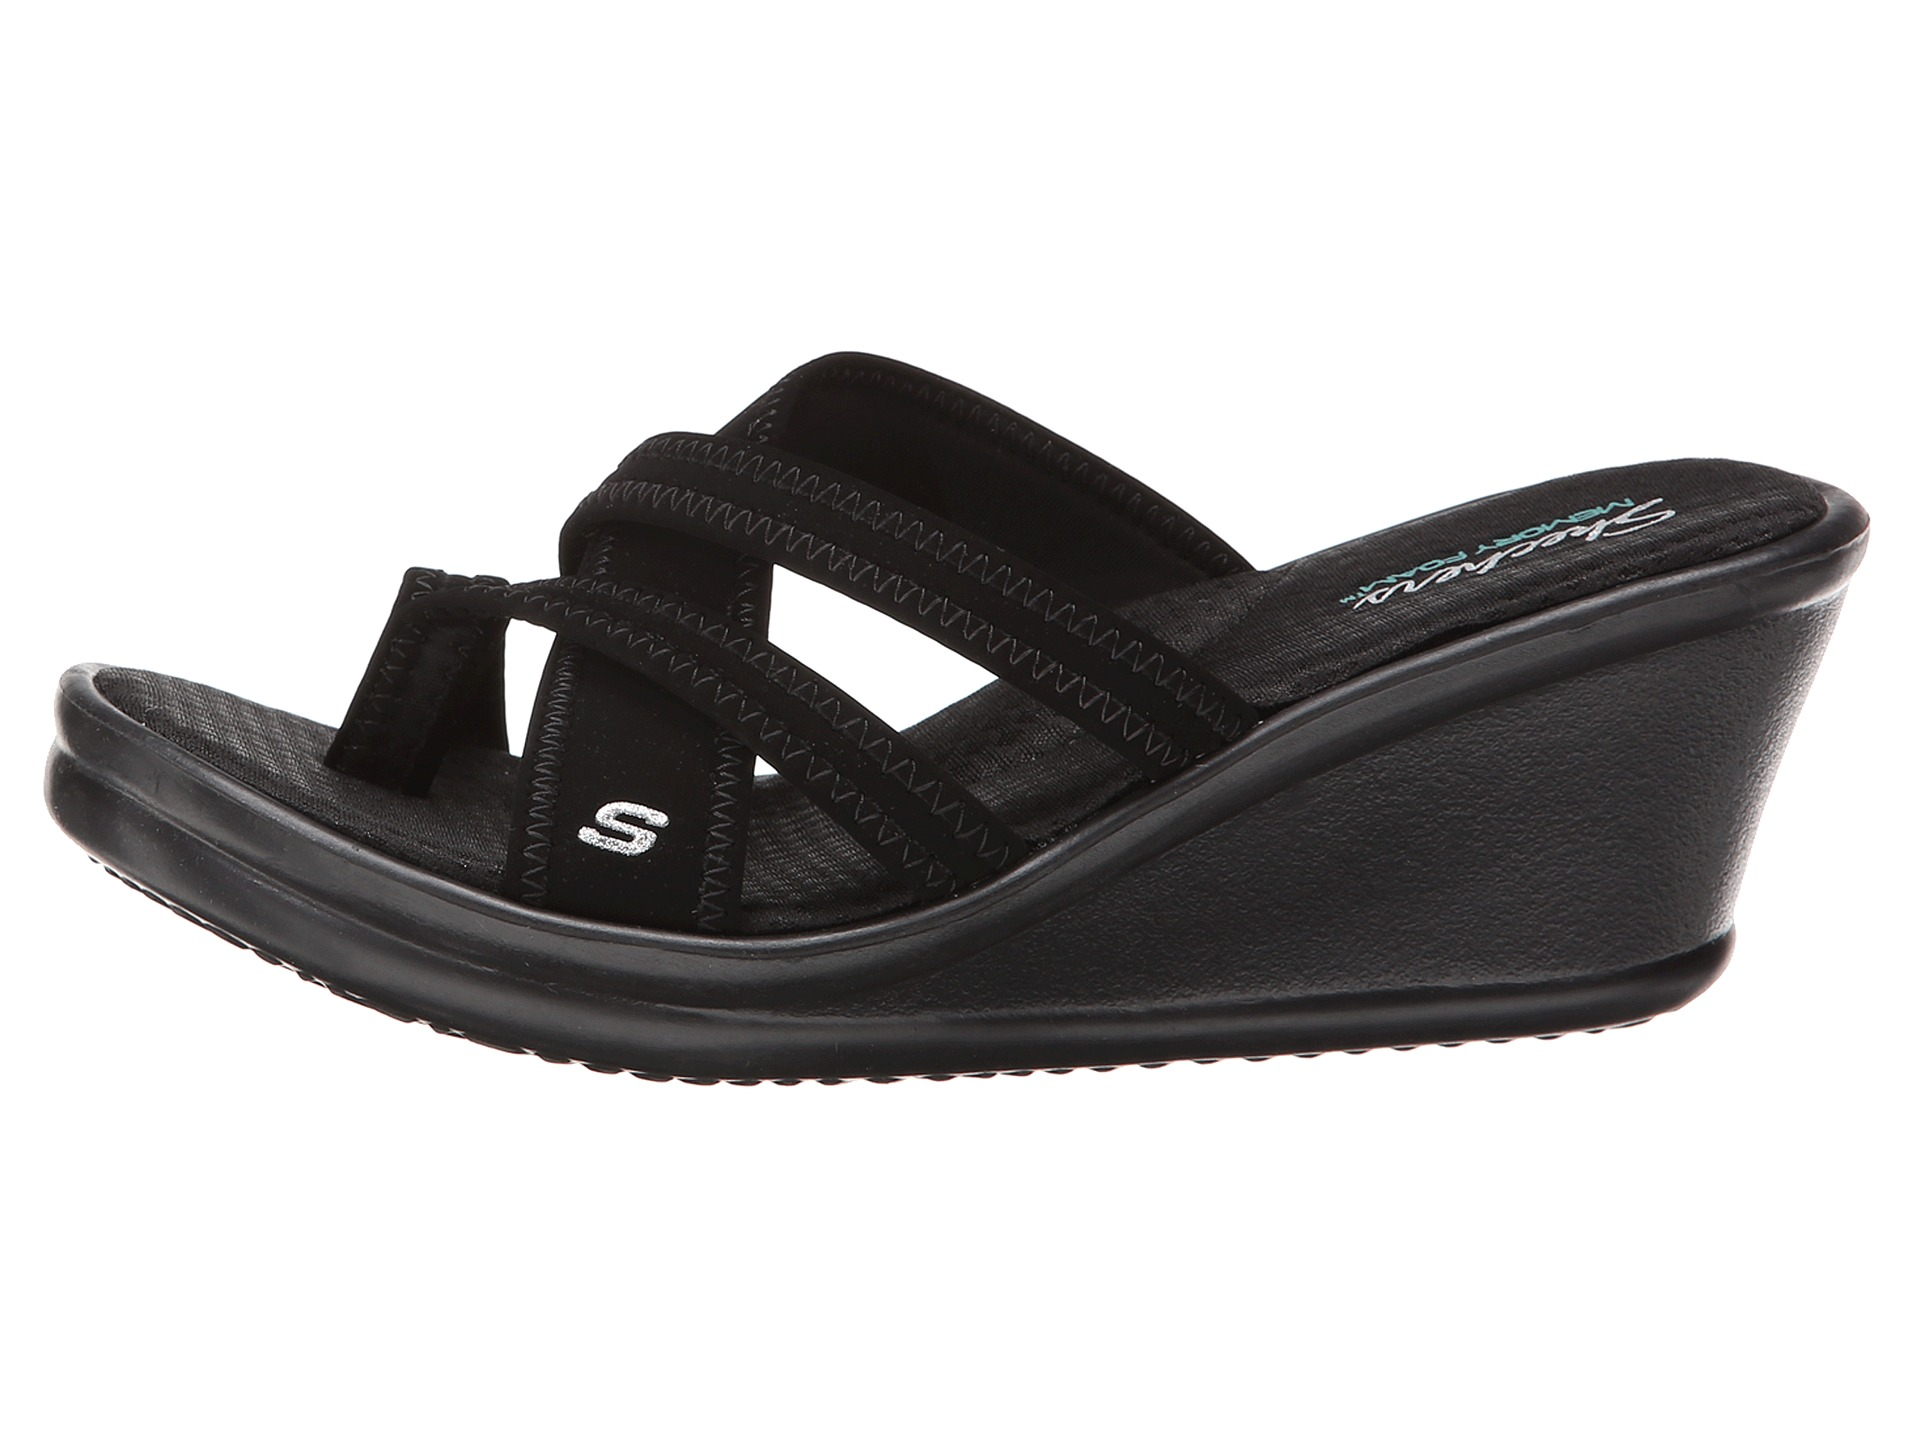 d12a73a78 Buy black sketcher sandals   OFF58% Discounted